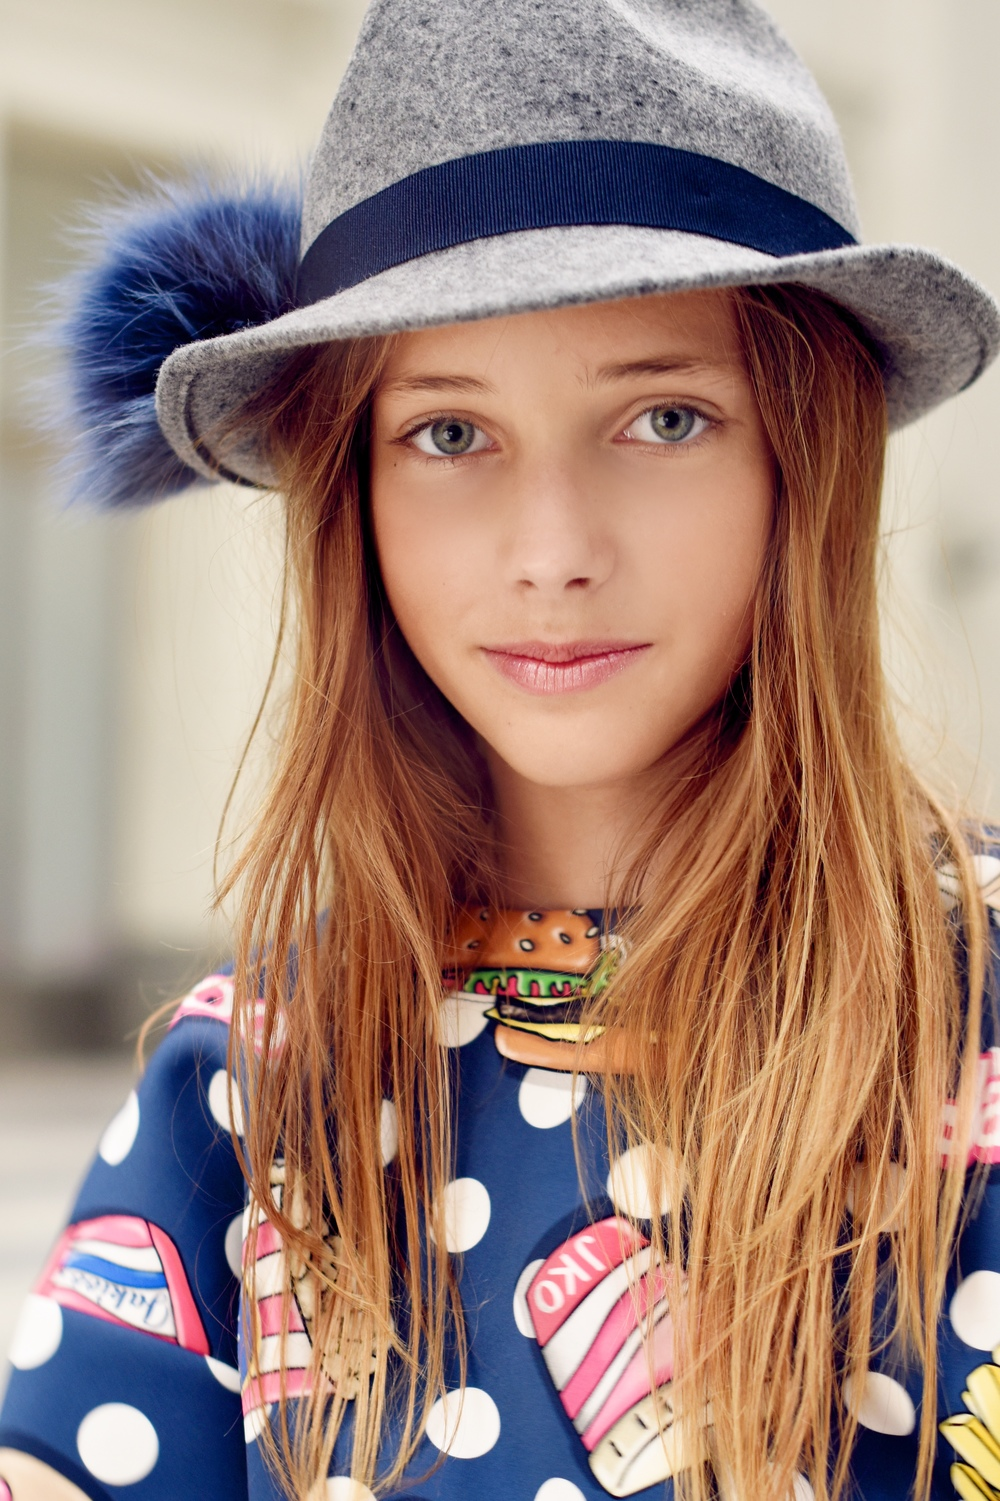 Enfant Street Style by Gina Kim Photography